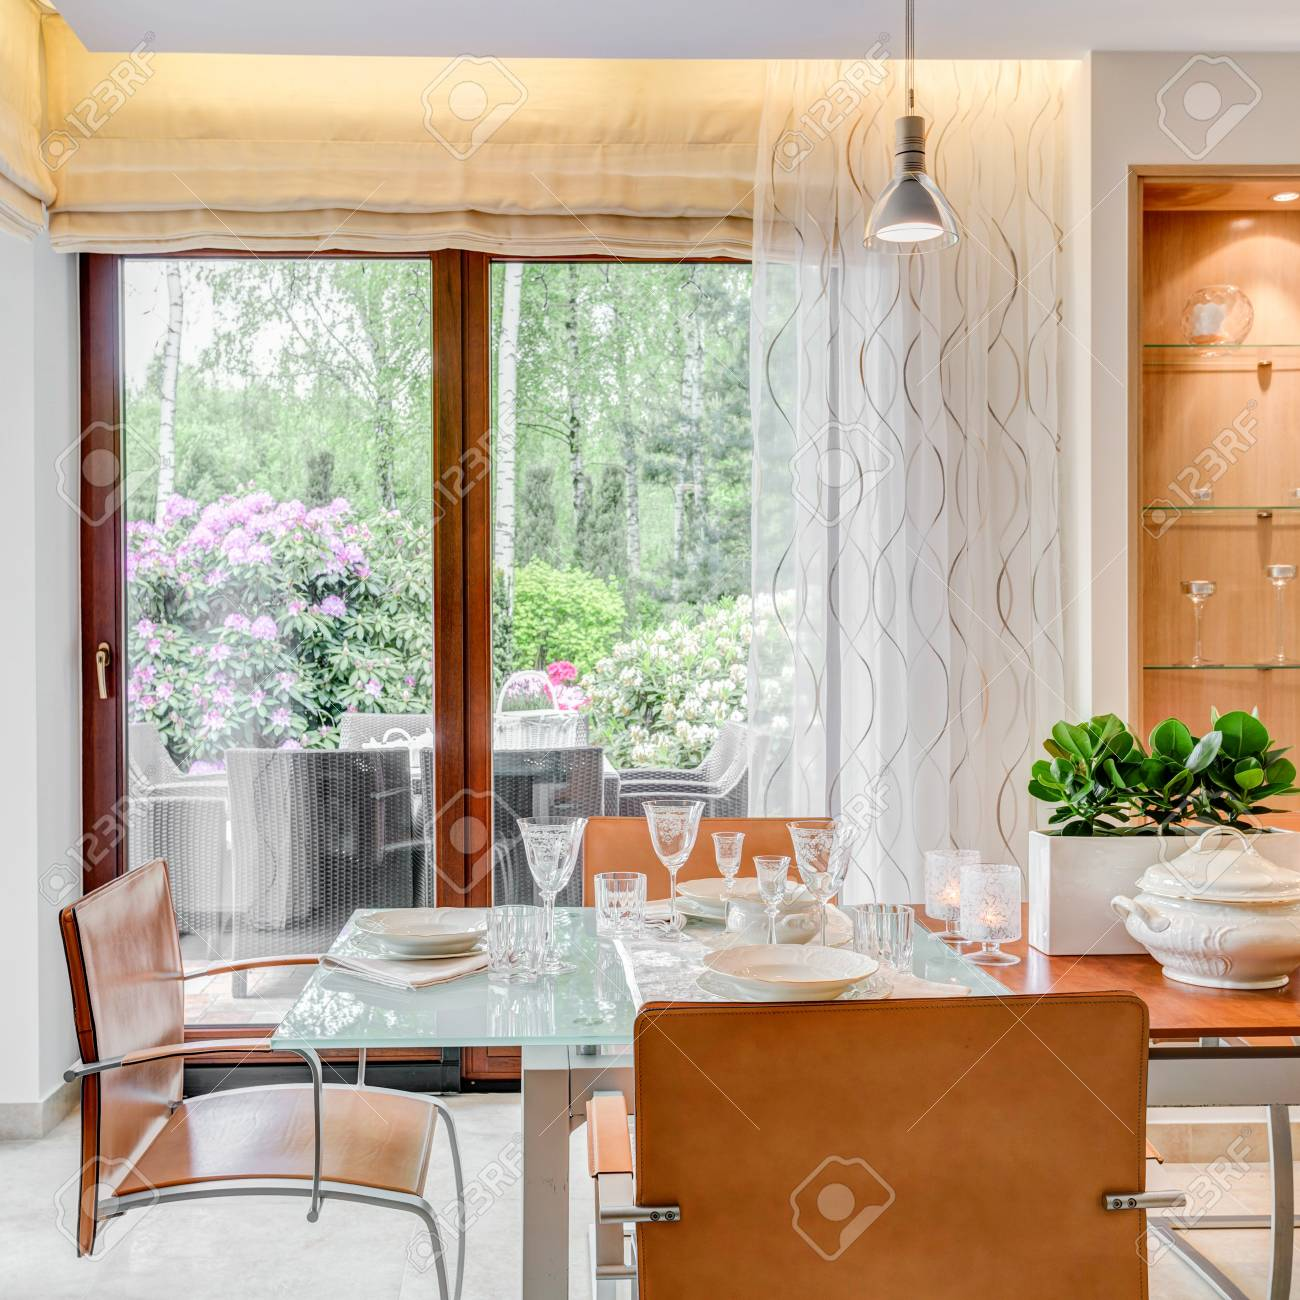 Modern Style Dining Room With Large Windows Stock Photo Picture And Royalty Free Image Image 57023630